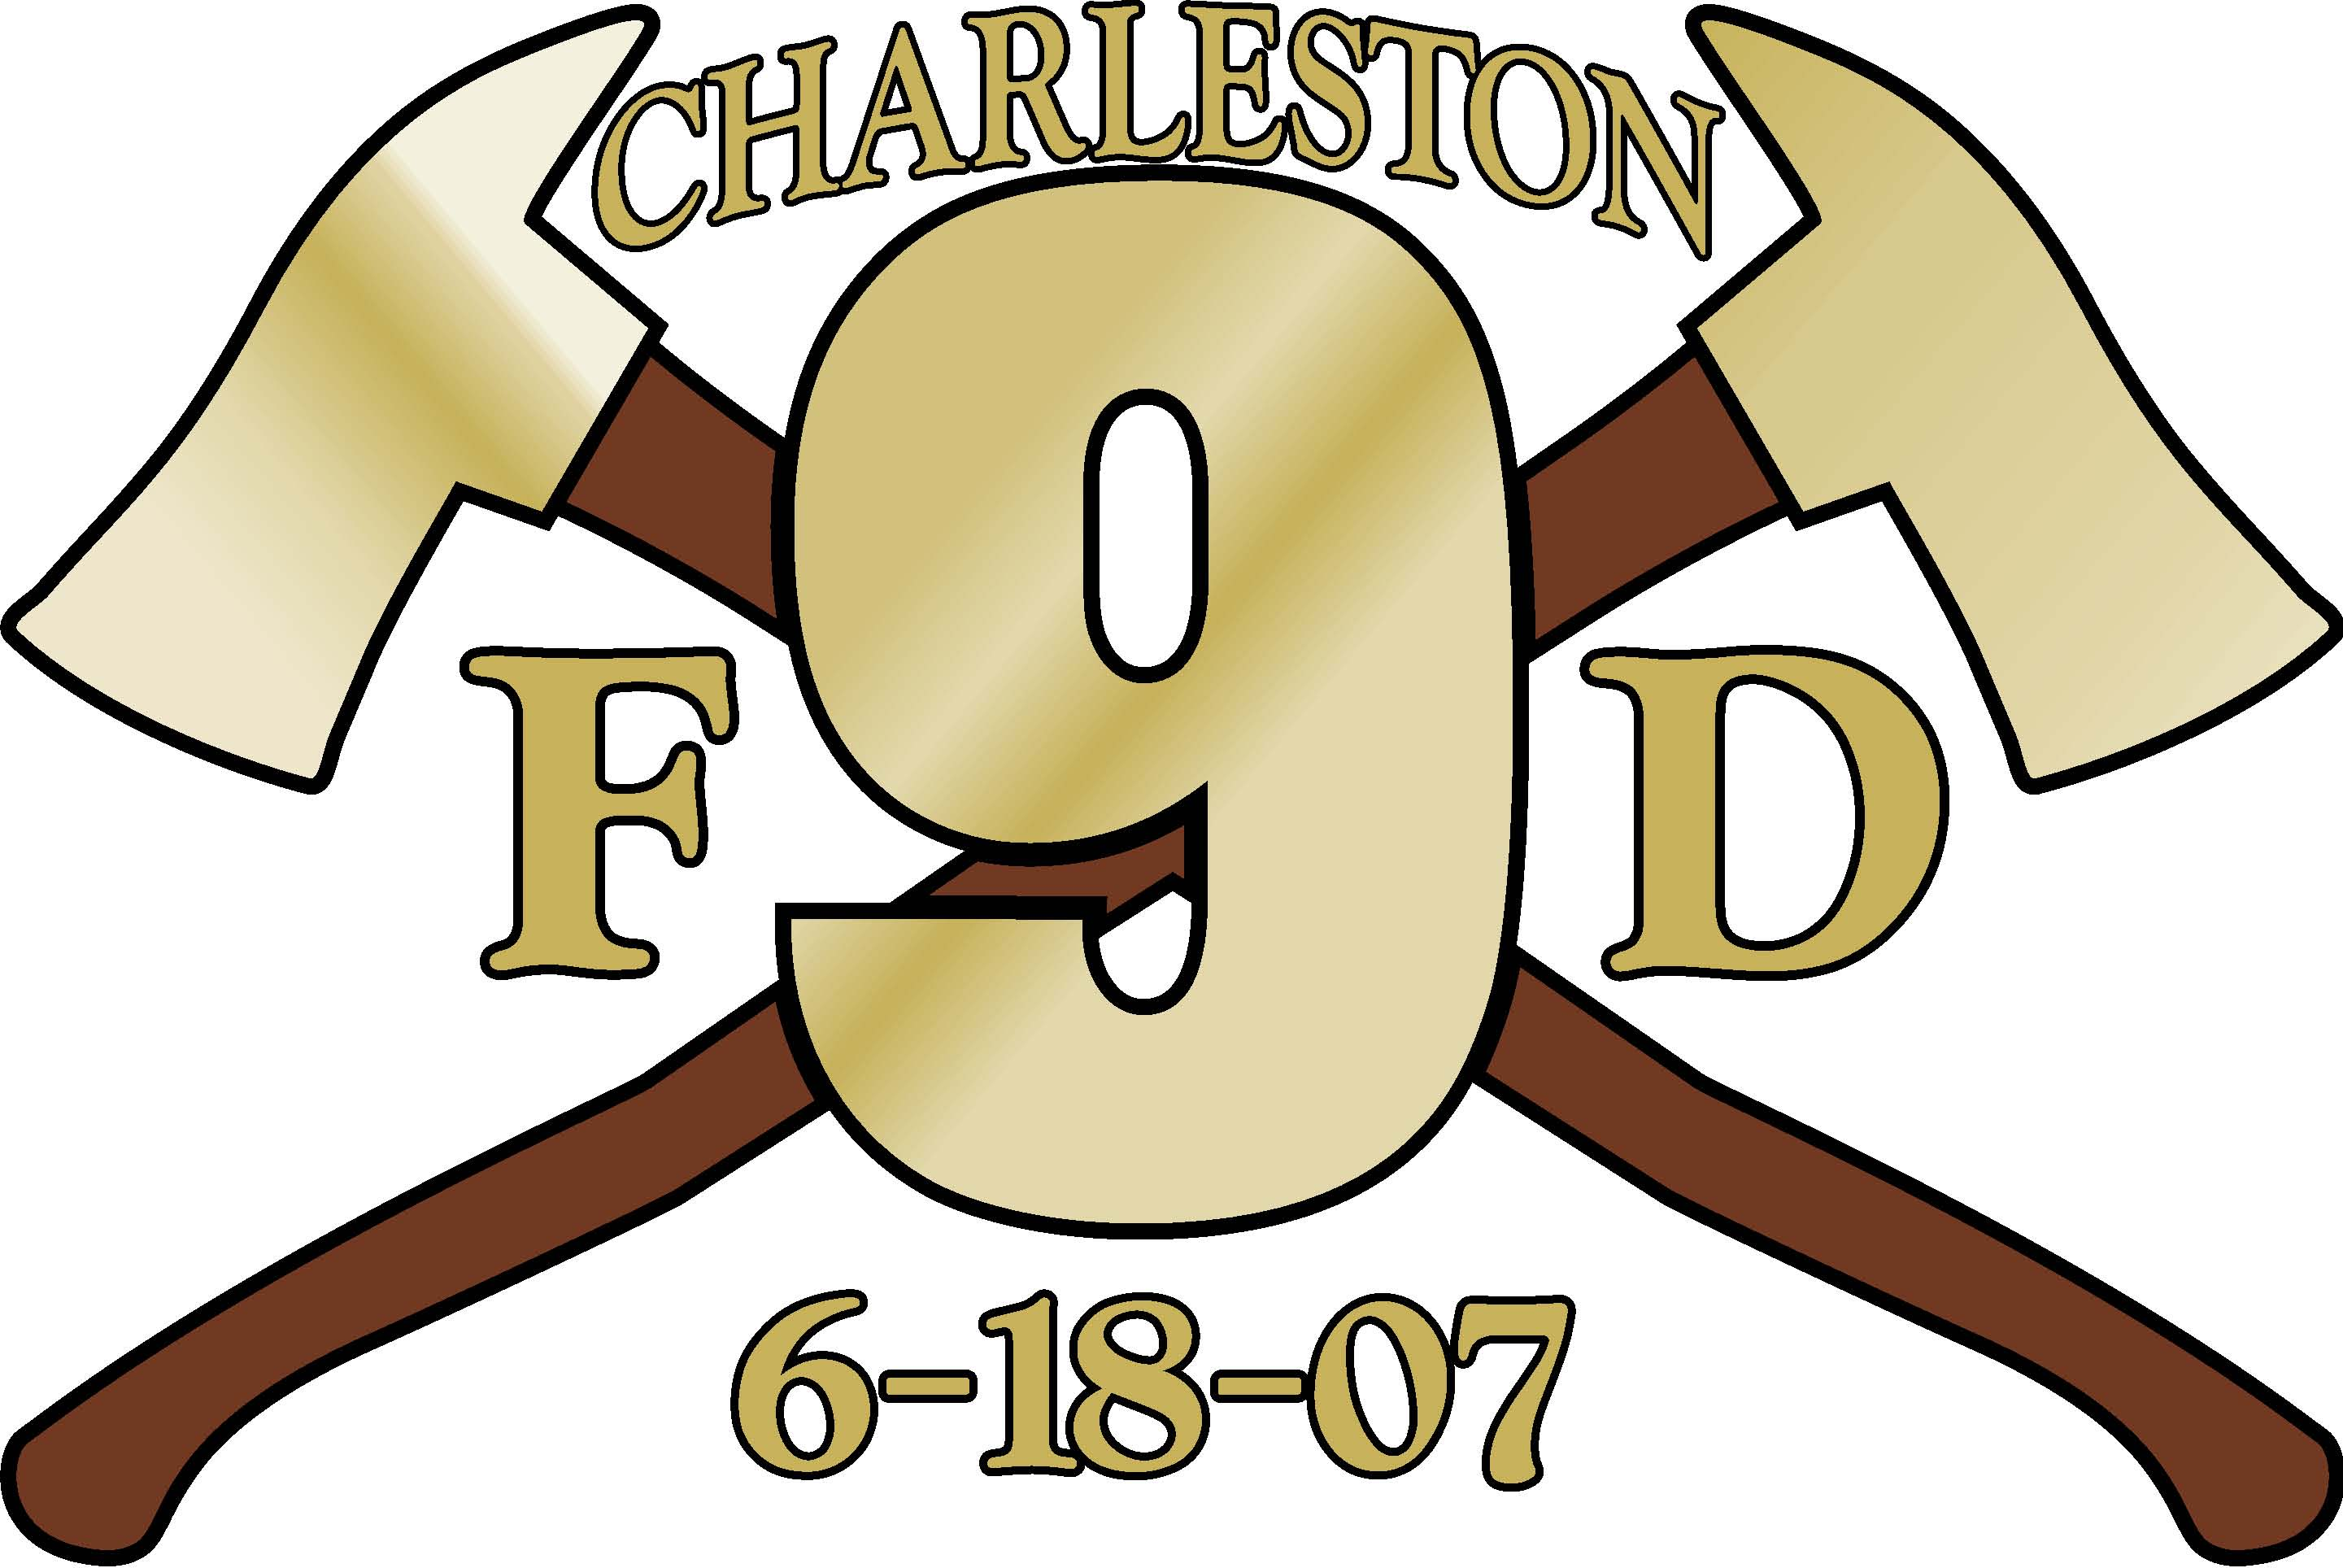 Charleston Fire Department 6-18-07